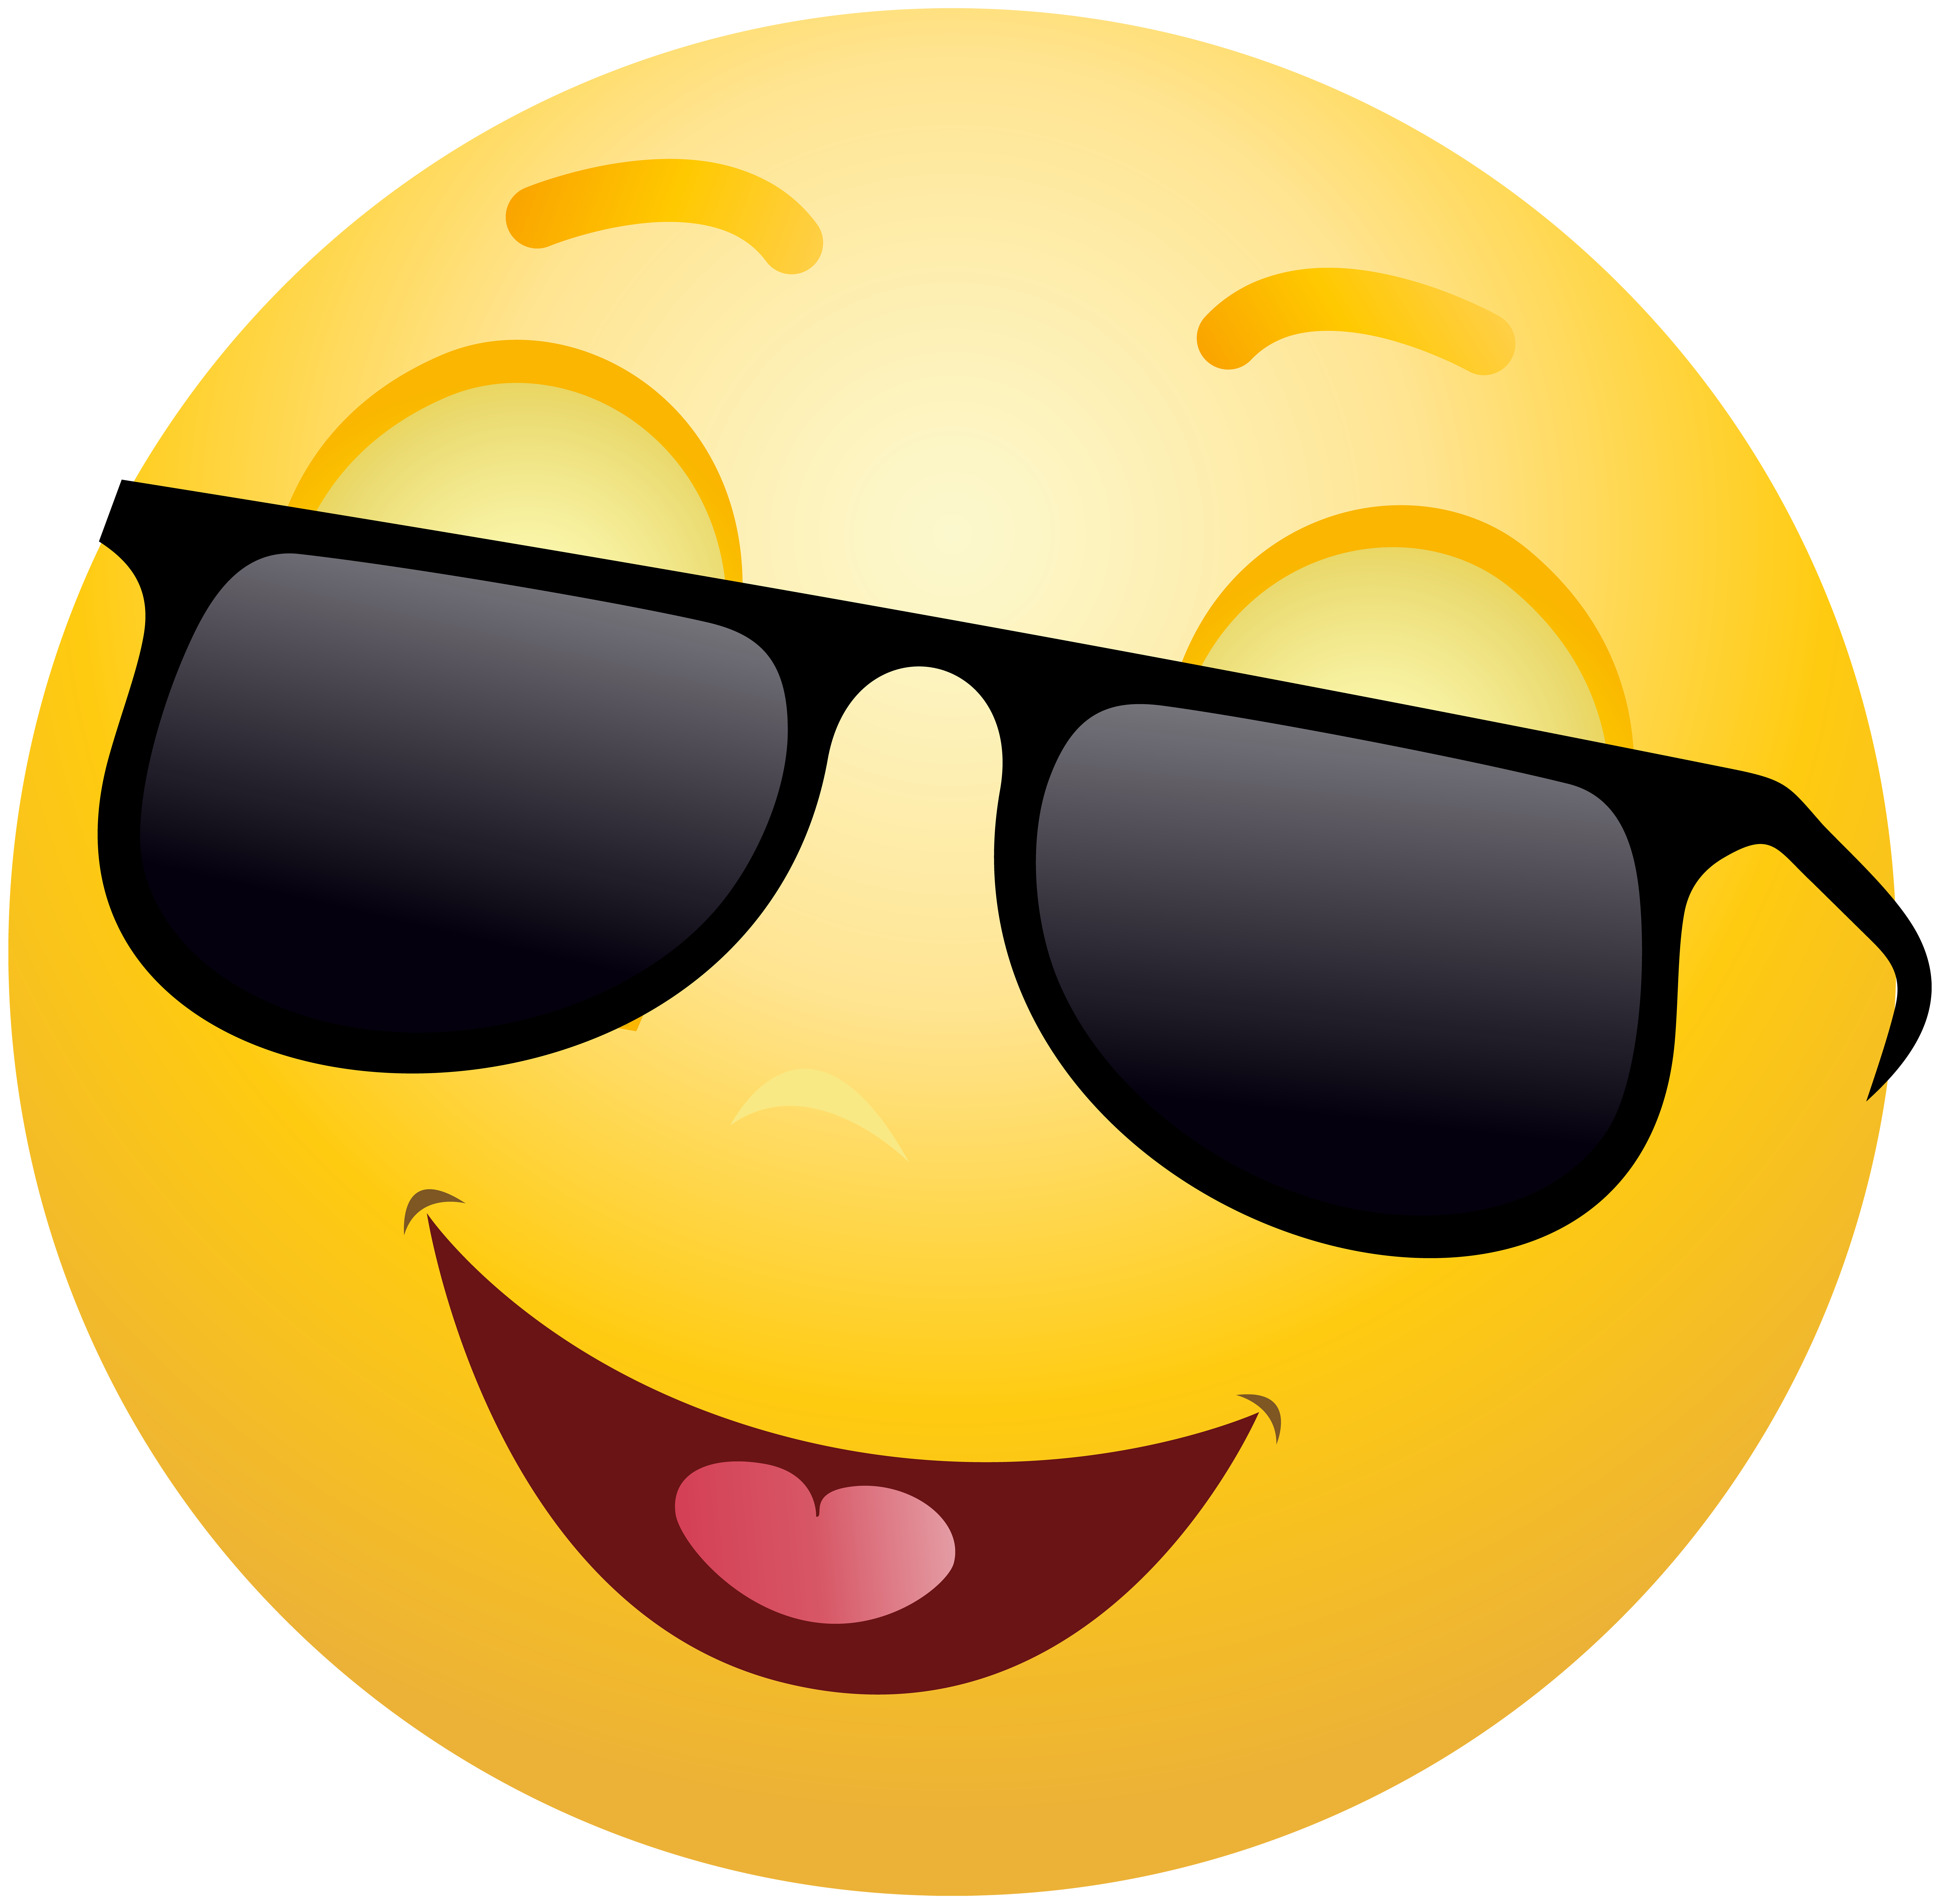 Smiley clipart smile. Smiling emoticon with sunglasses clipart royalty free